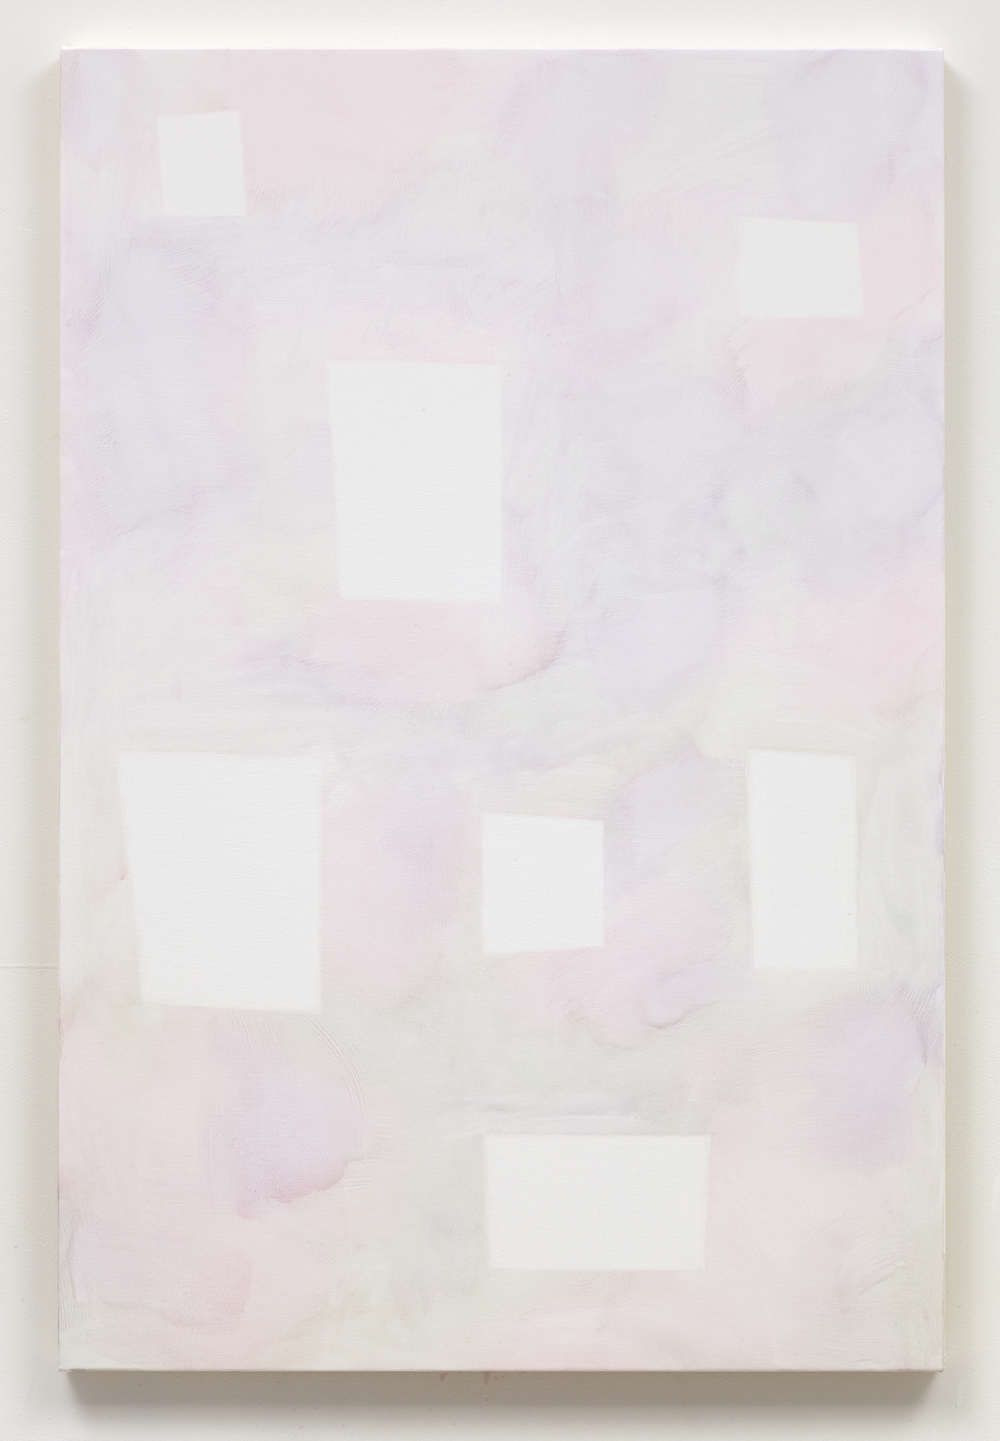 Untitled (Recur) 2012